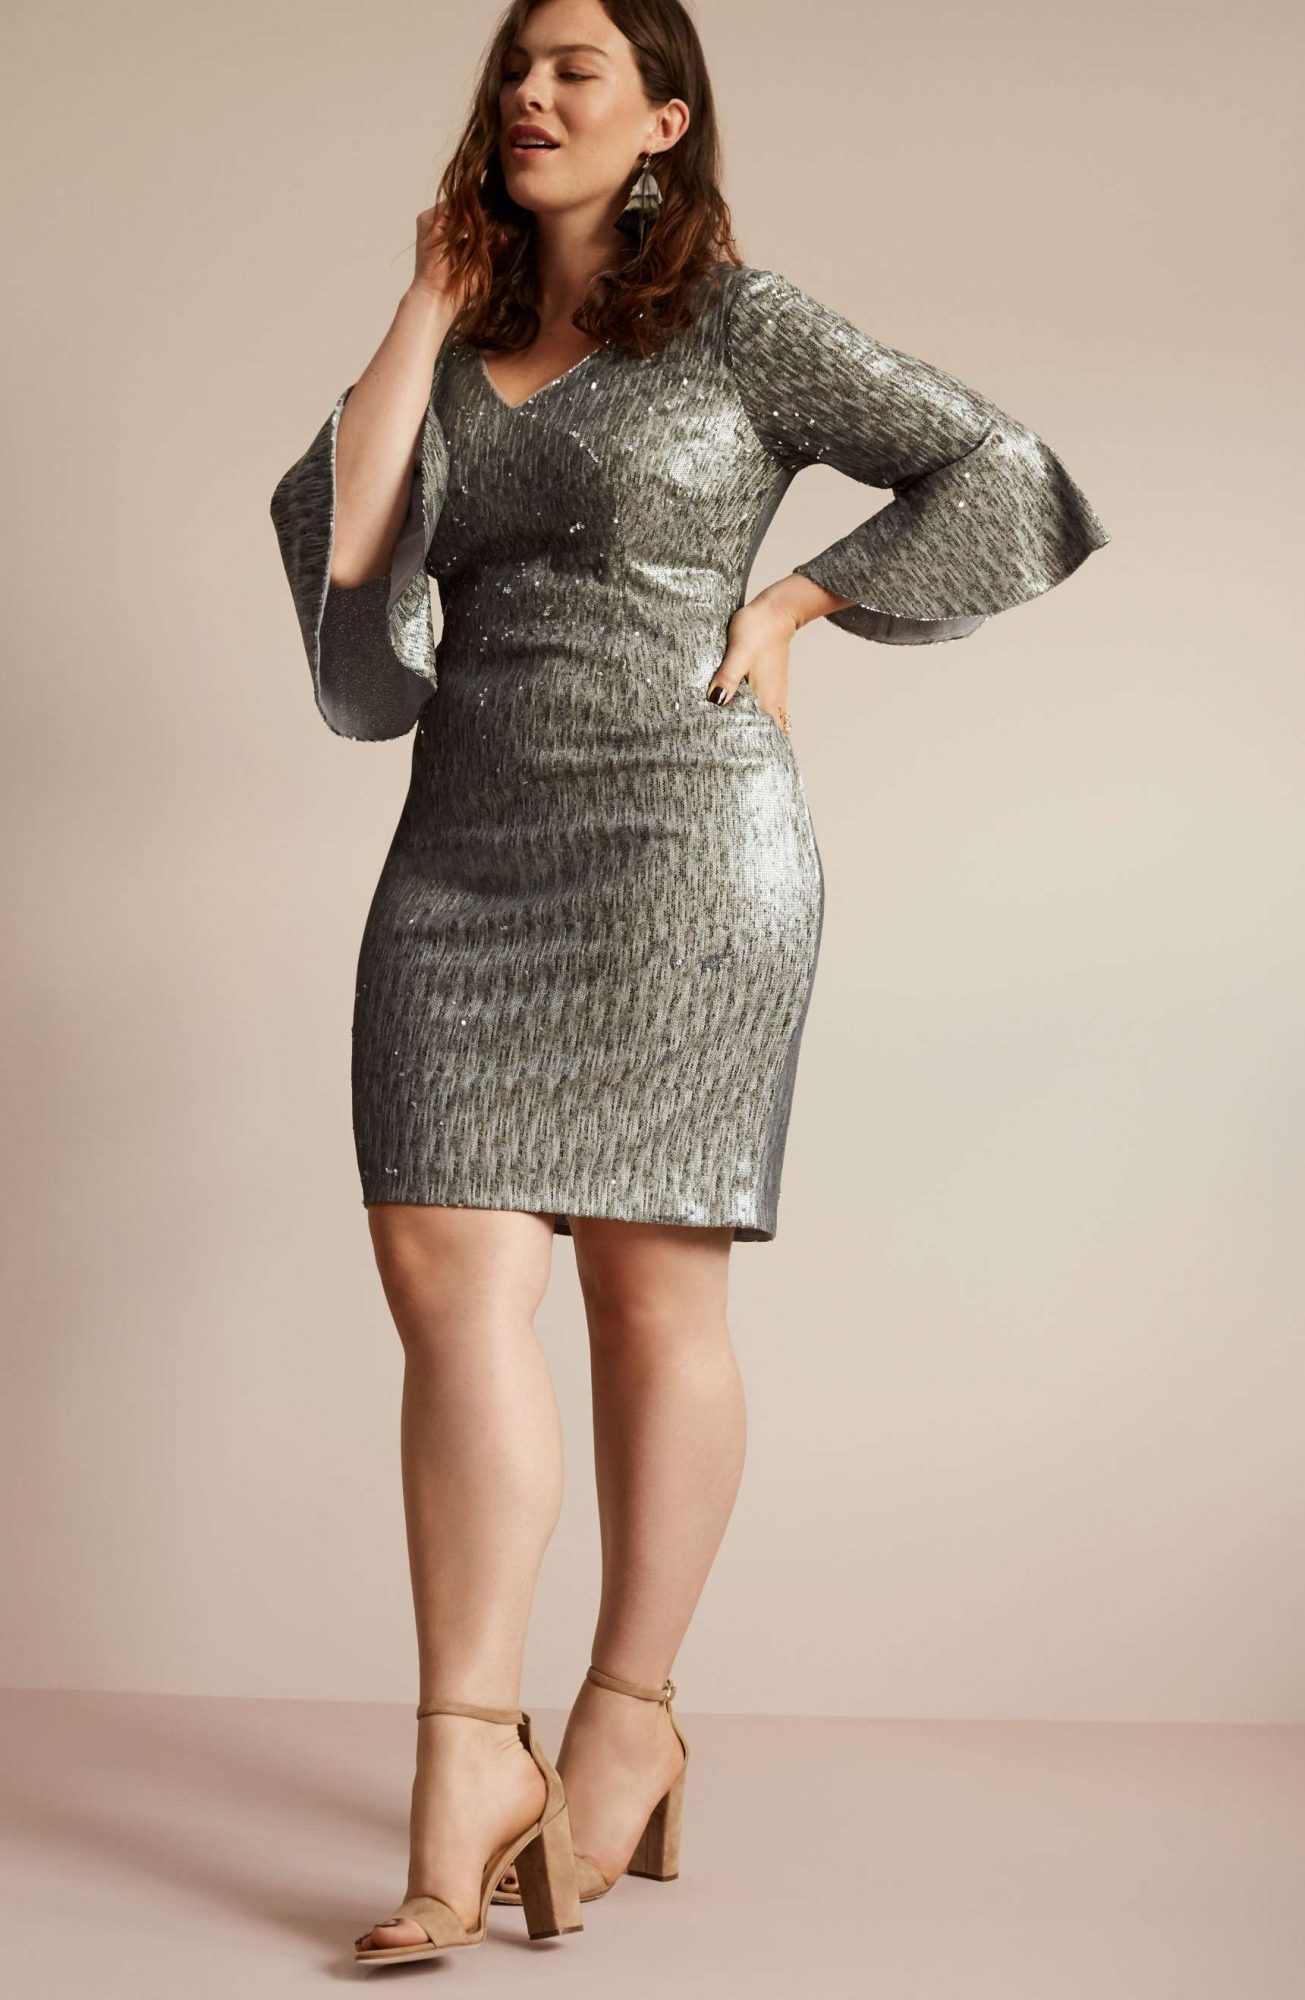 Shopping: 14 Curve-Friendly Dresses to Wear to All Of Your Holiday Parties